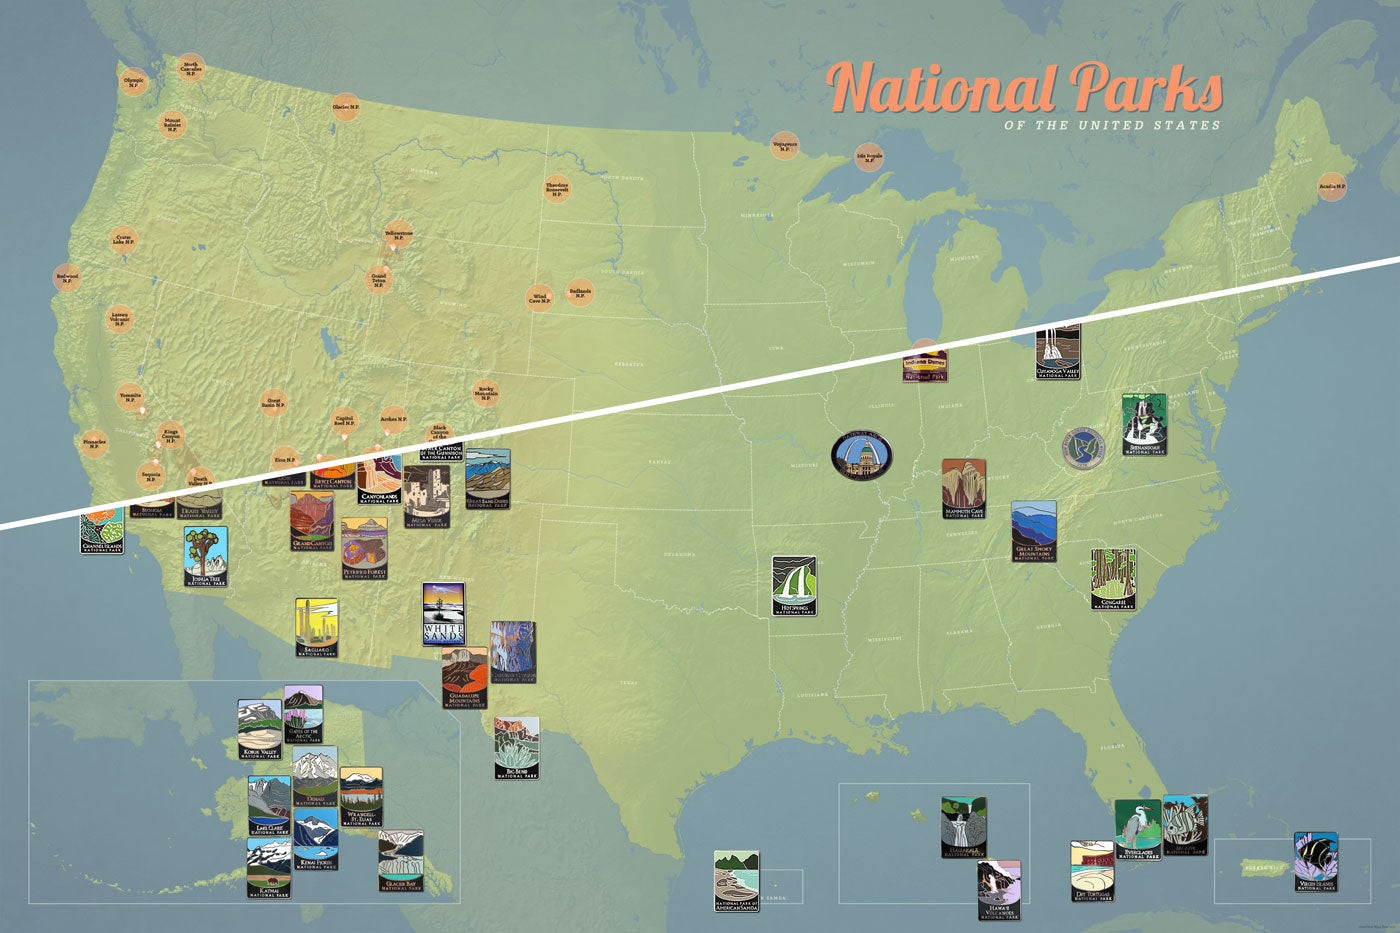 National Park Collector Pins Map 24x36 Poster